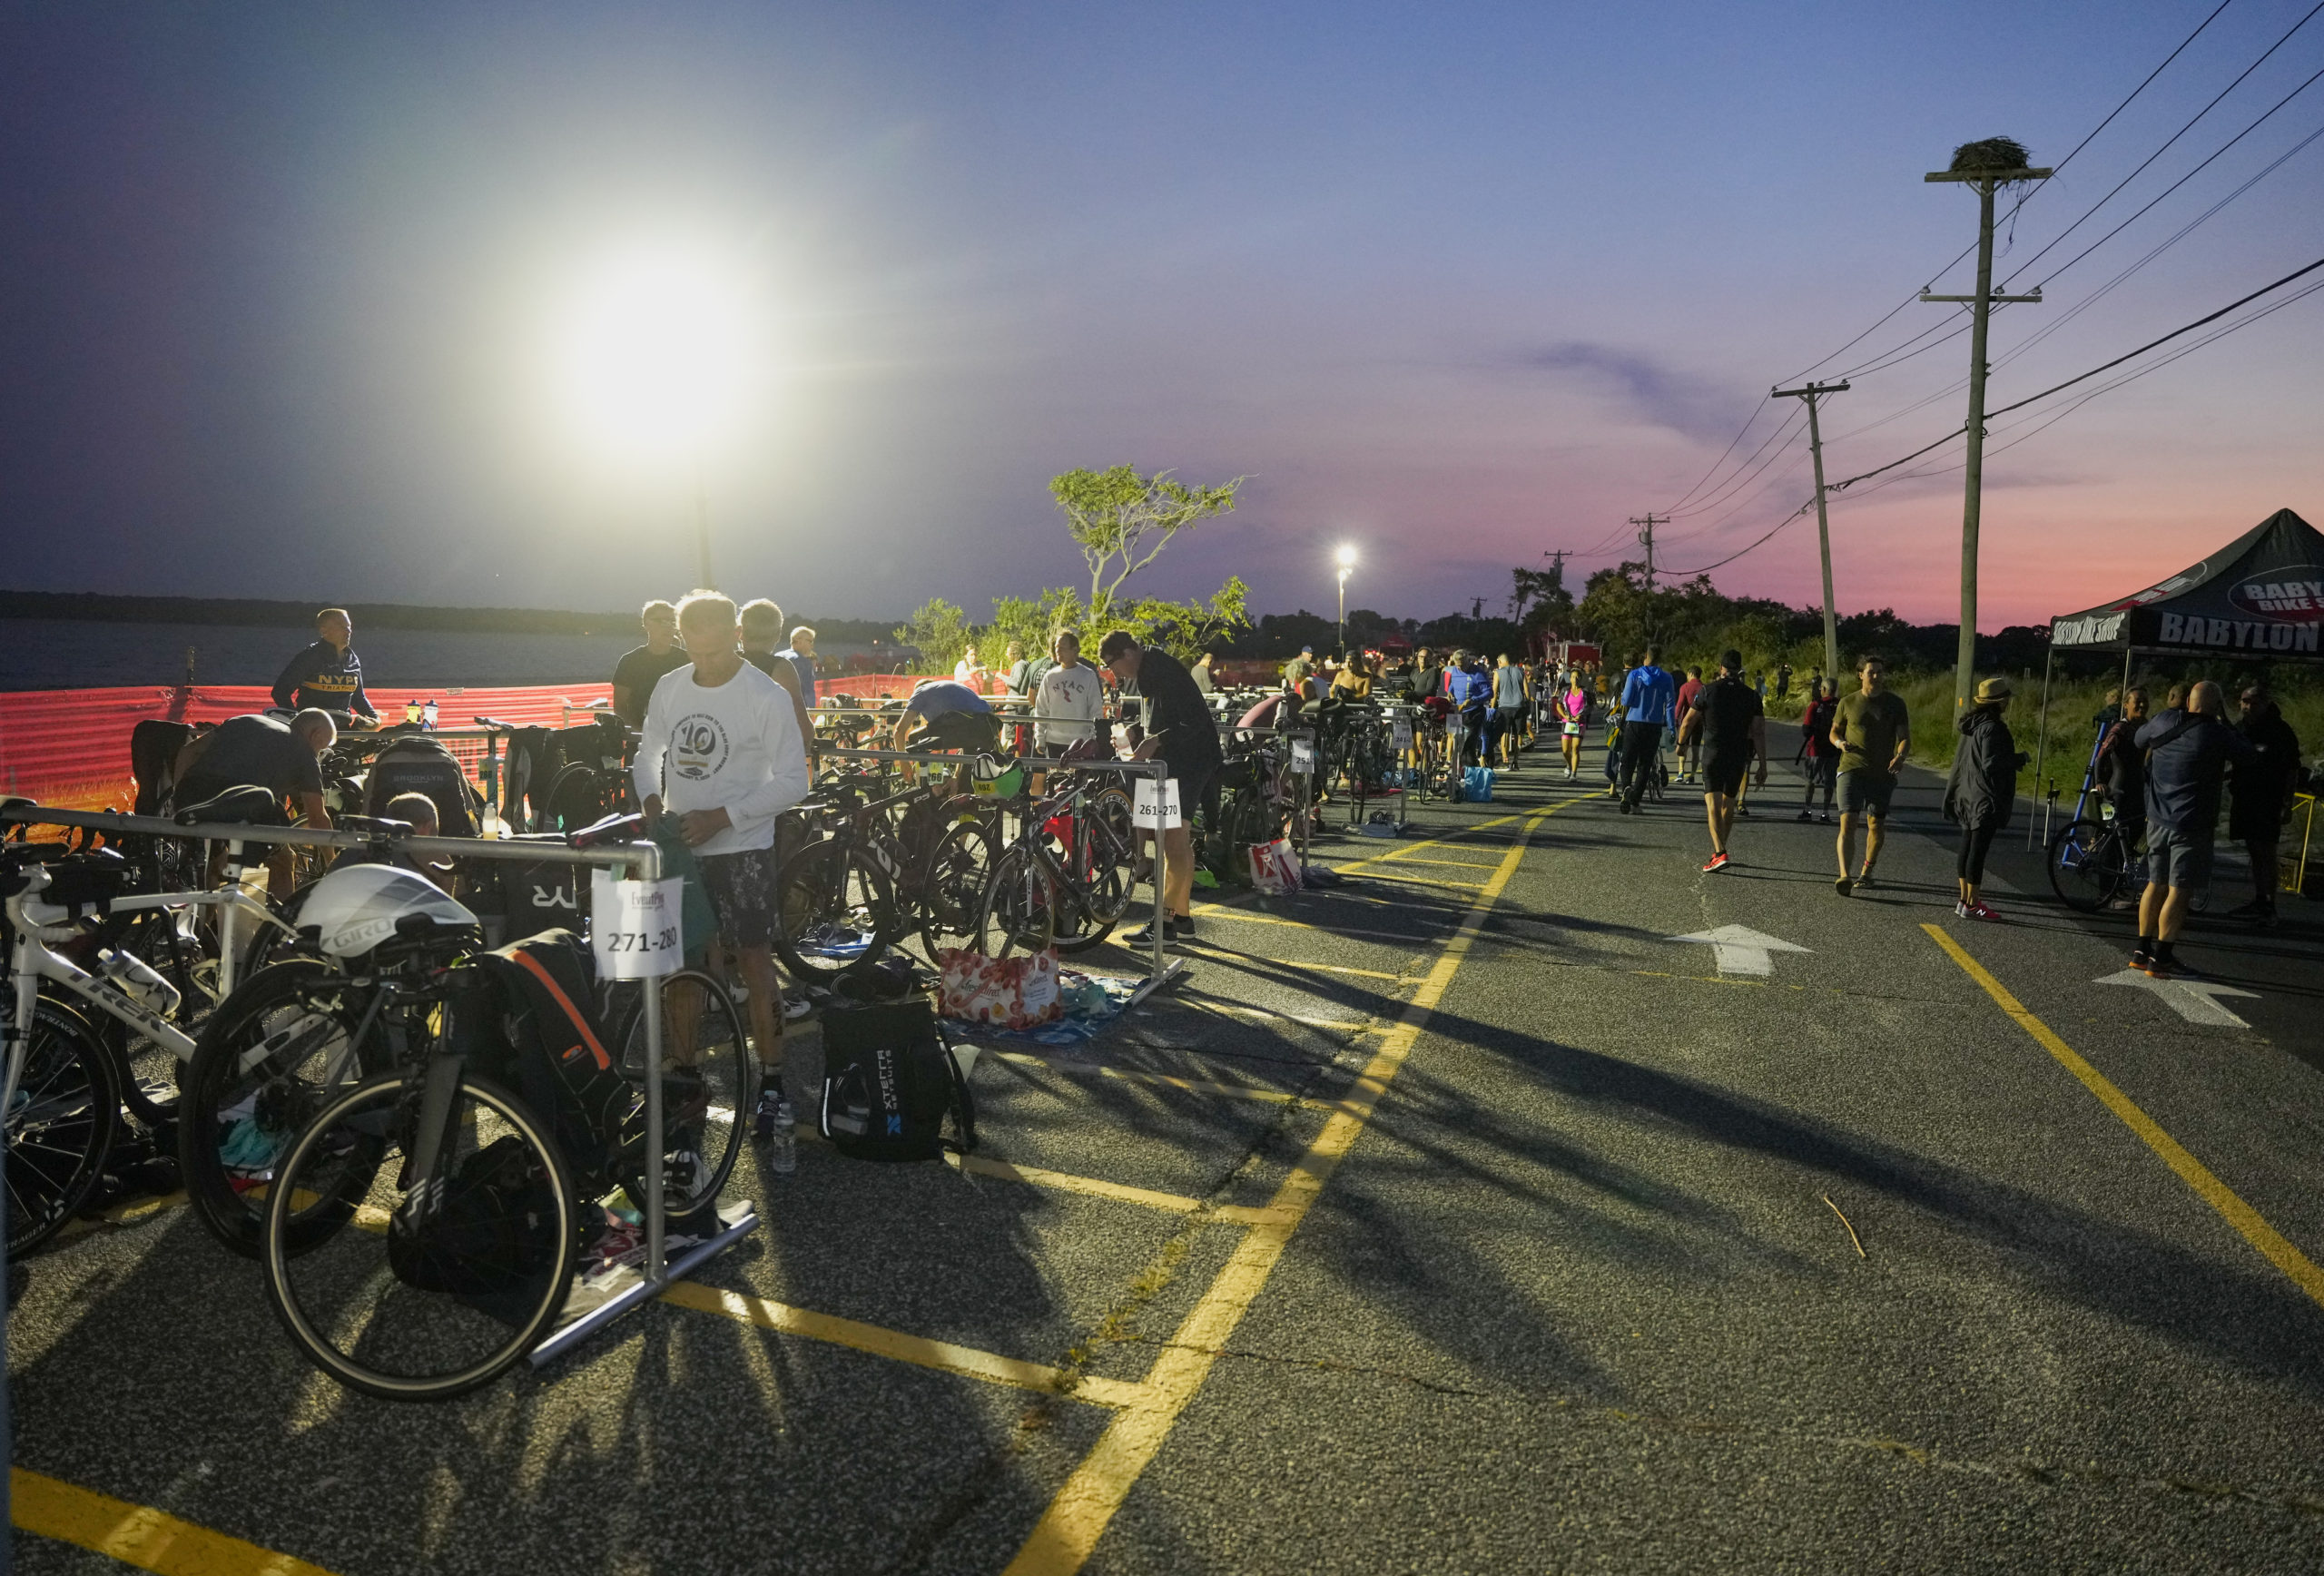 Triathletes were up early to get ready for Sunday morning's race at Long Beach.